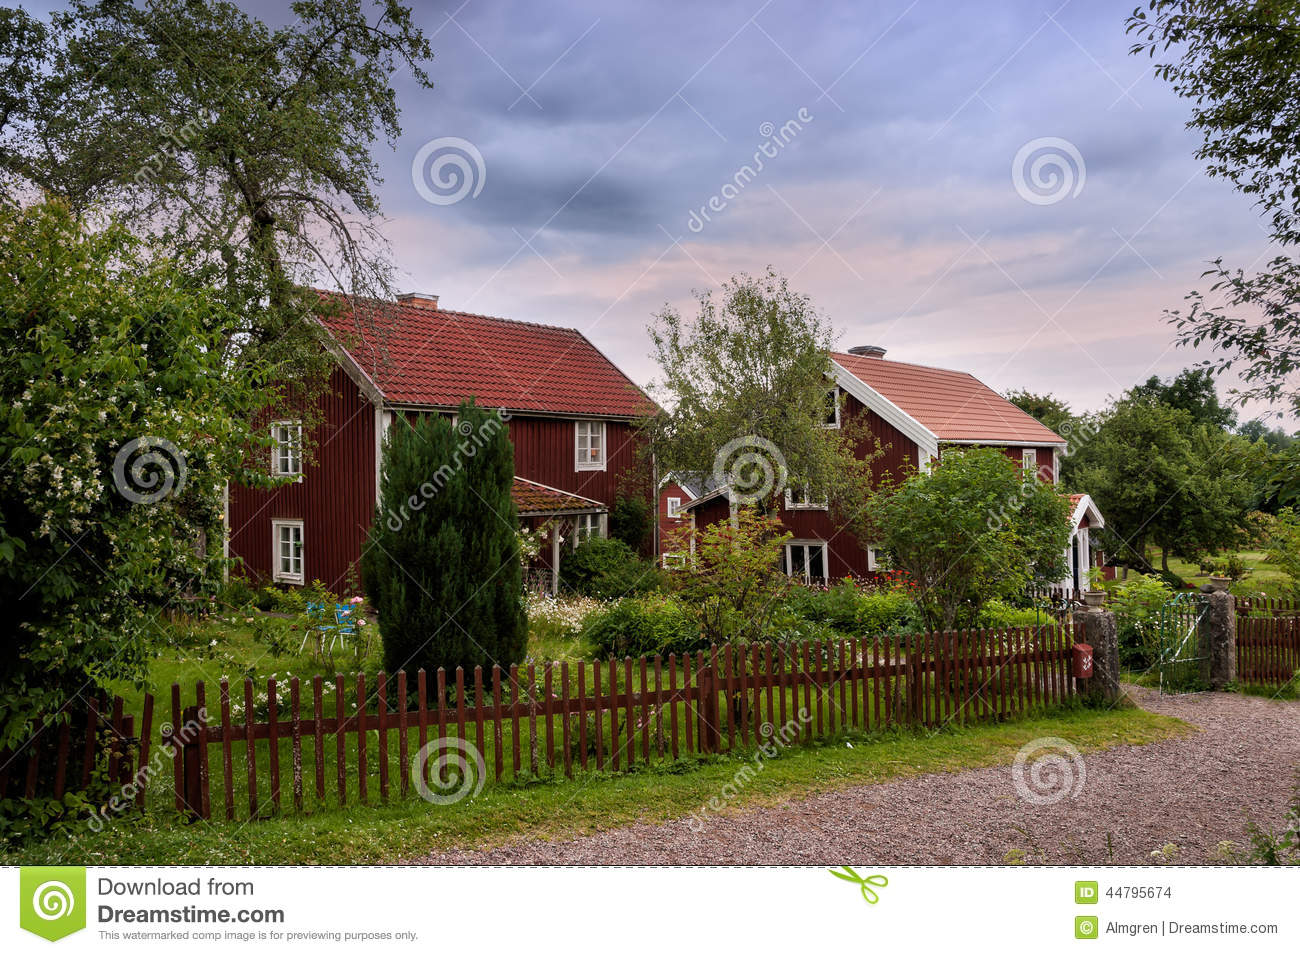 Swedish Farm With Typical Red Wooden Buildings Stock Image